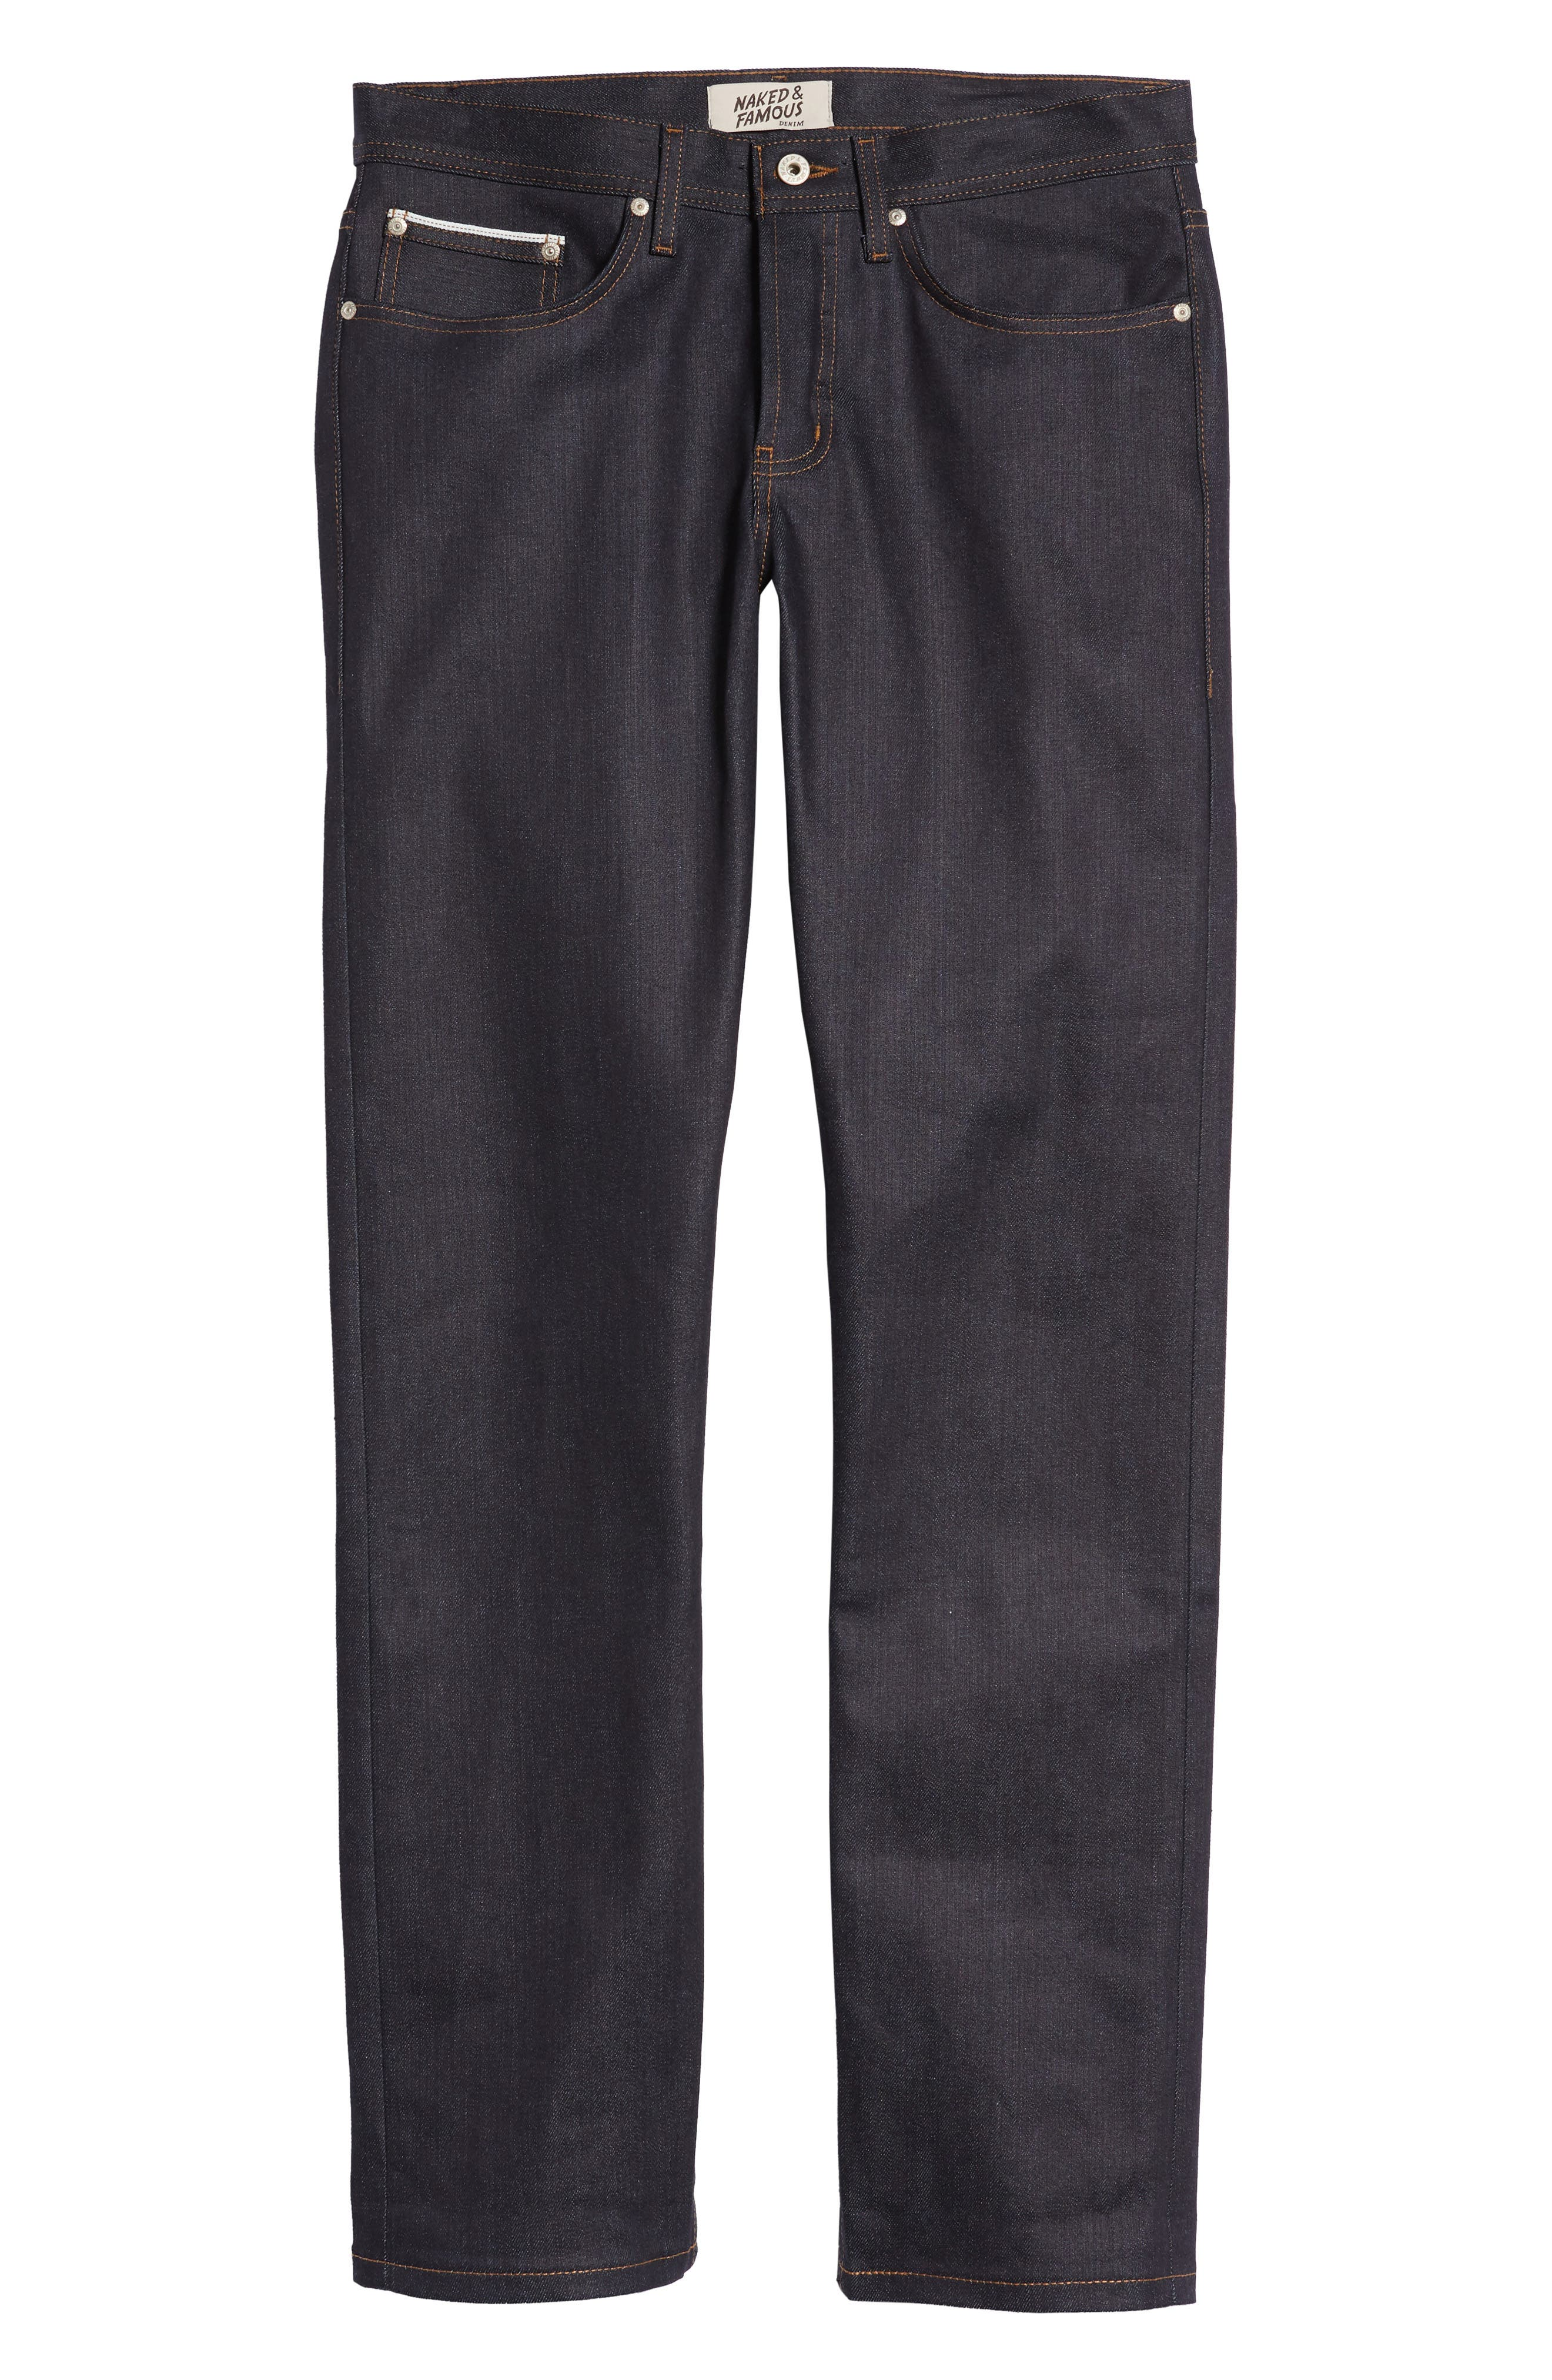 Naked & Famous Weird Guy Slim Fit Jeans,                             Alternate thumbnail 6, color,                             Indigo